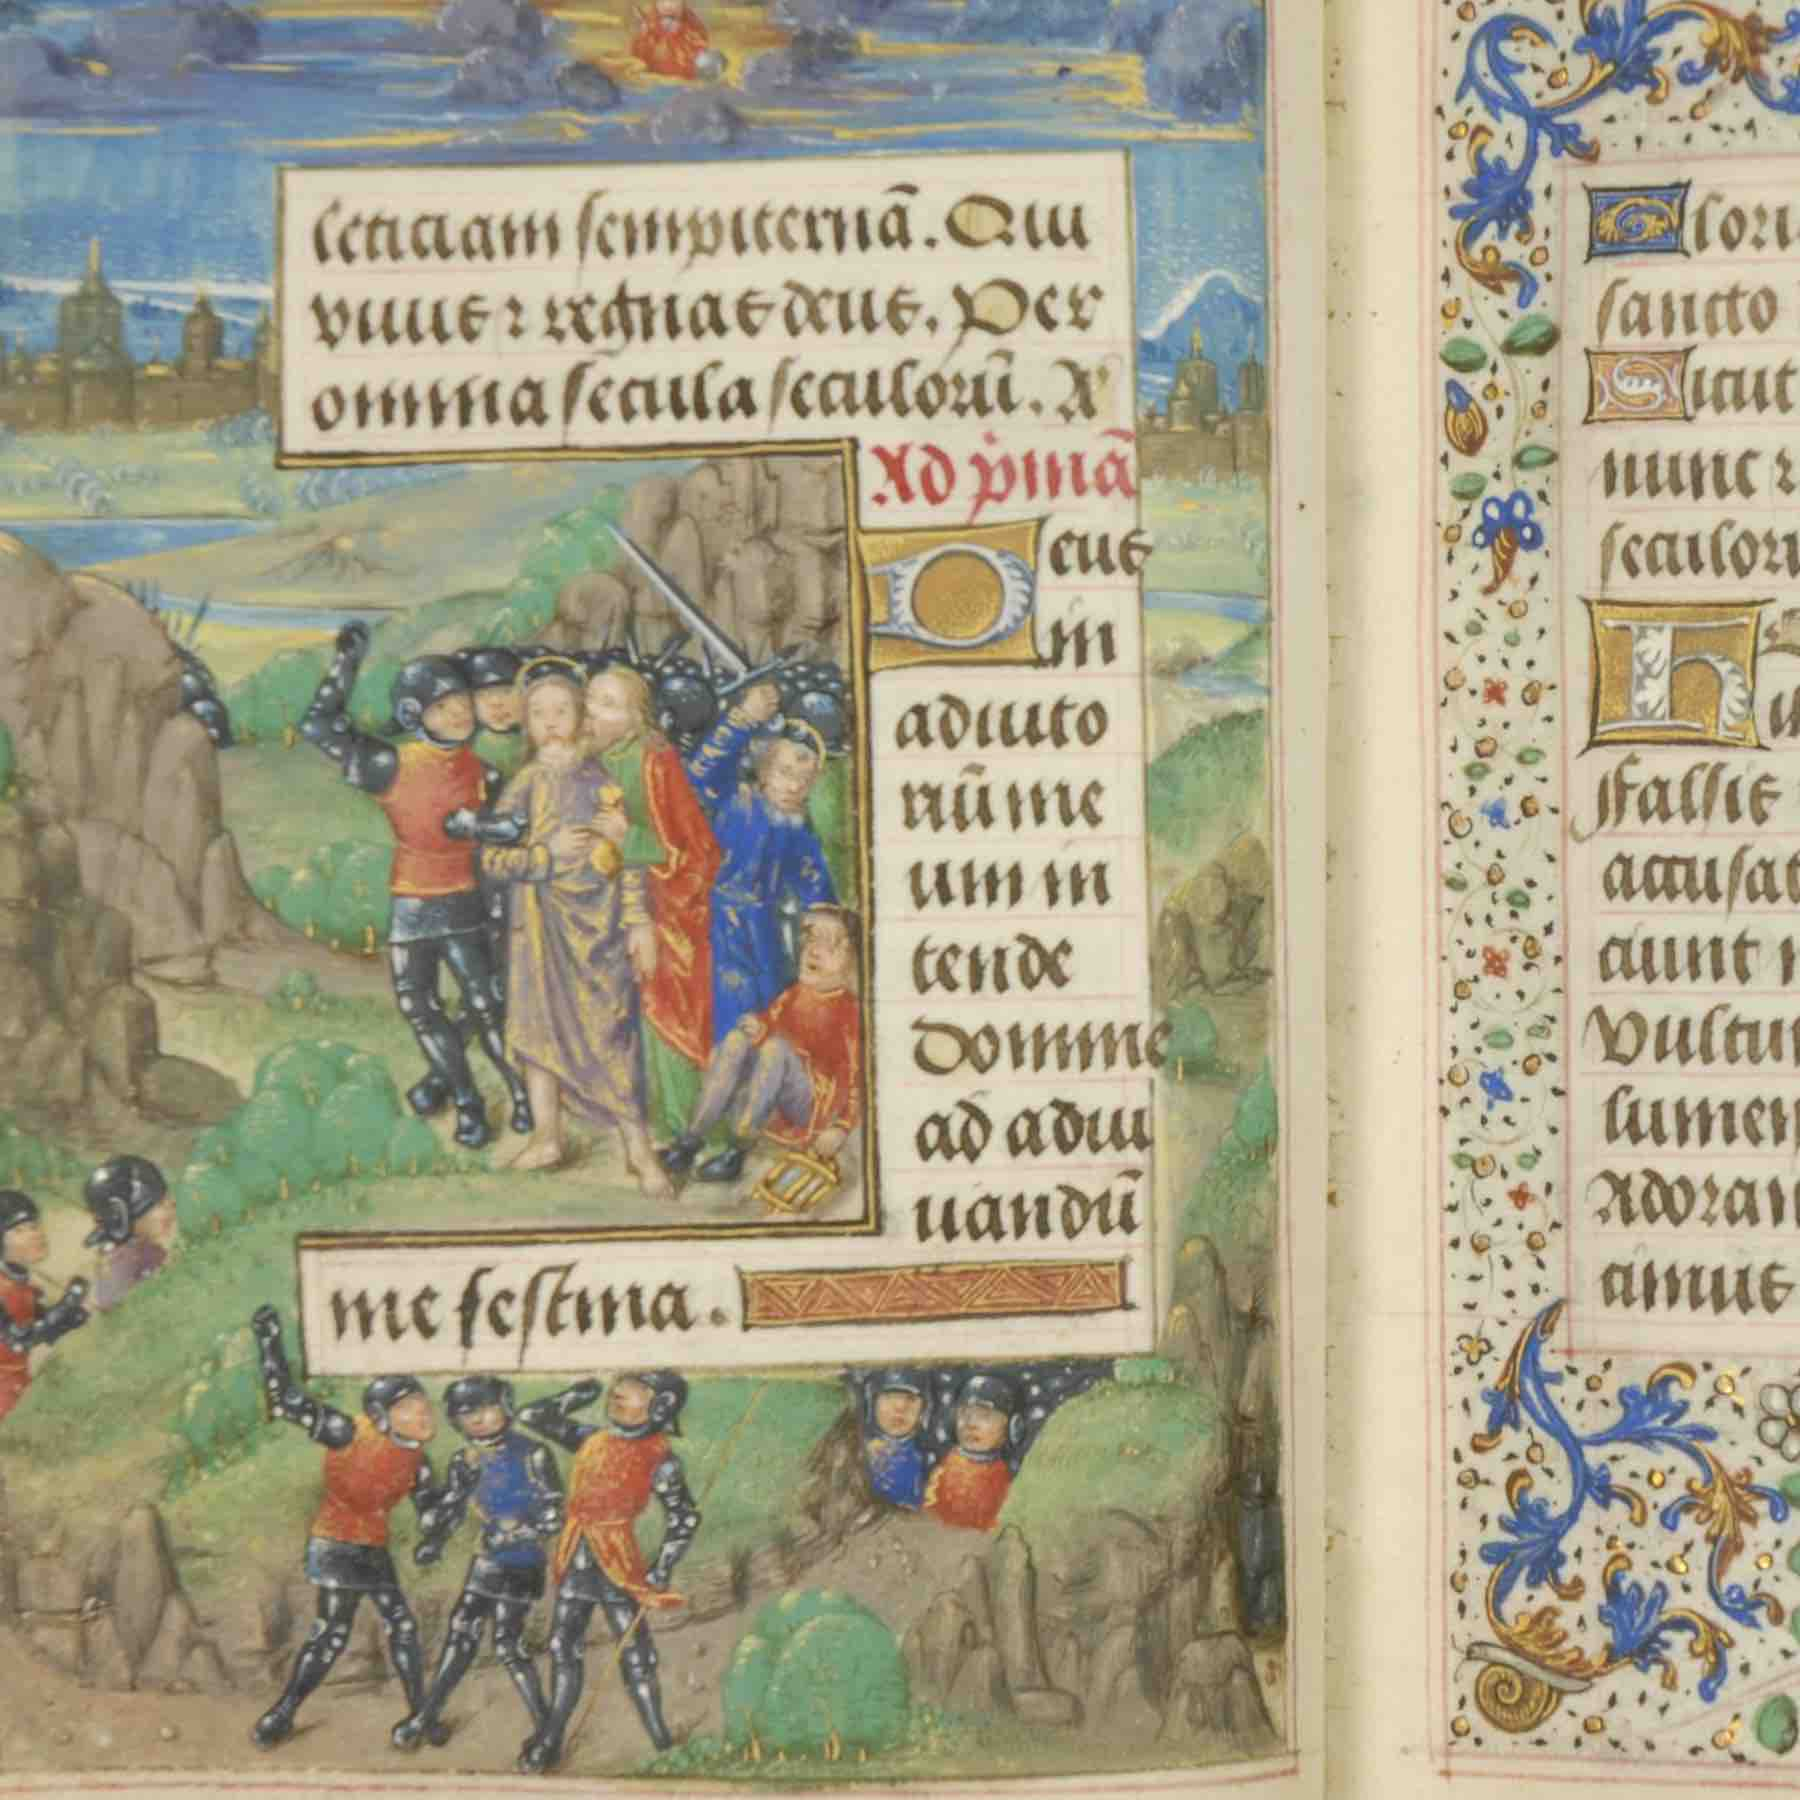 16th-c. French Book of Hours, Mount Angel Abbey, Oregon (<a href='https://w3id.org/vhmml/readingRoom/view/519224'>MAA 5</a>)